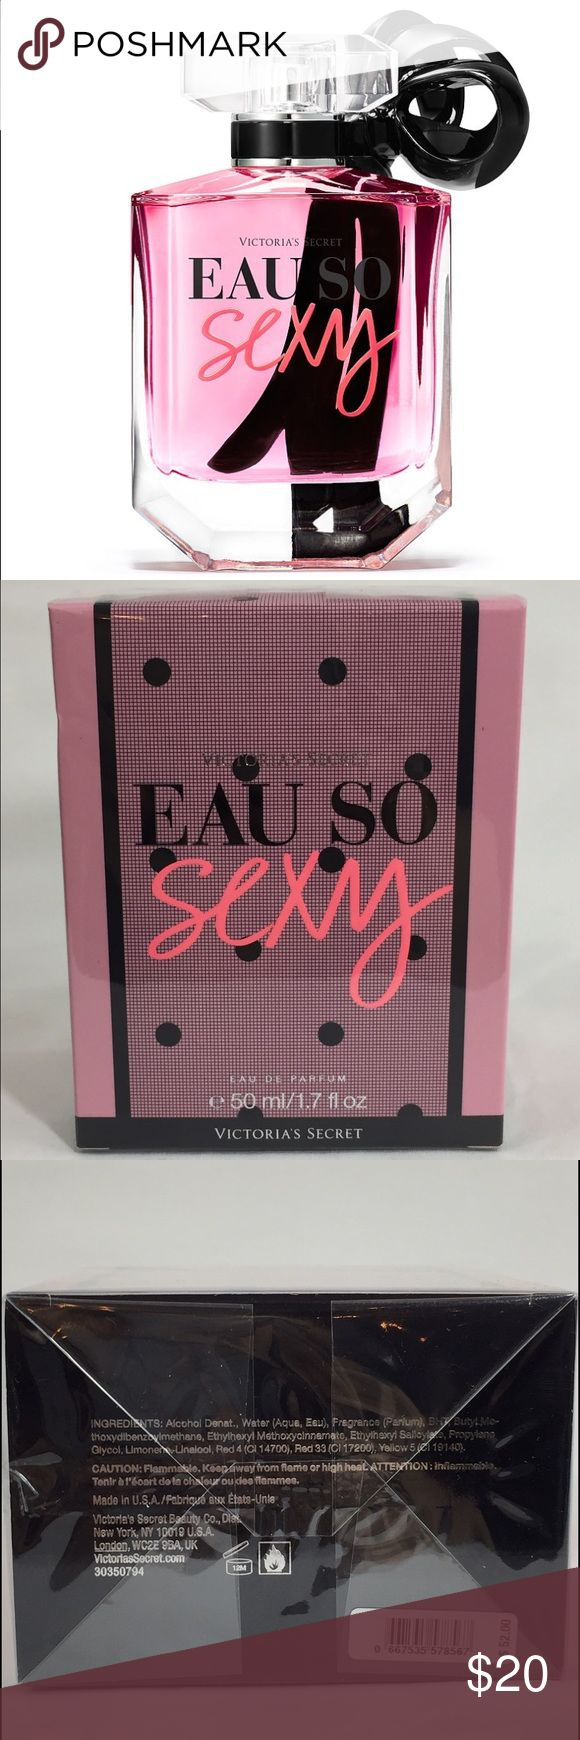 """""""Eau So Sexy"""" by Victoria's Secret Parfum 1.7oz 🎀 Fruity and floral, gentle and feminine. This is brand new and in box, Eau de Parfum 1.7oz. 🎀  The sale of this item helps fund Wheelchair Sports Federation's sled hockey programs as a fundraiser. Thank you for supporting adaptive athletes!  🏒 👏🏼 ❤️ 👏🏼 🏒 Victoria's Secret Makeup"""